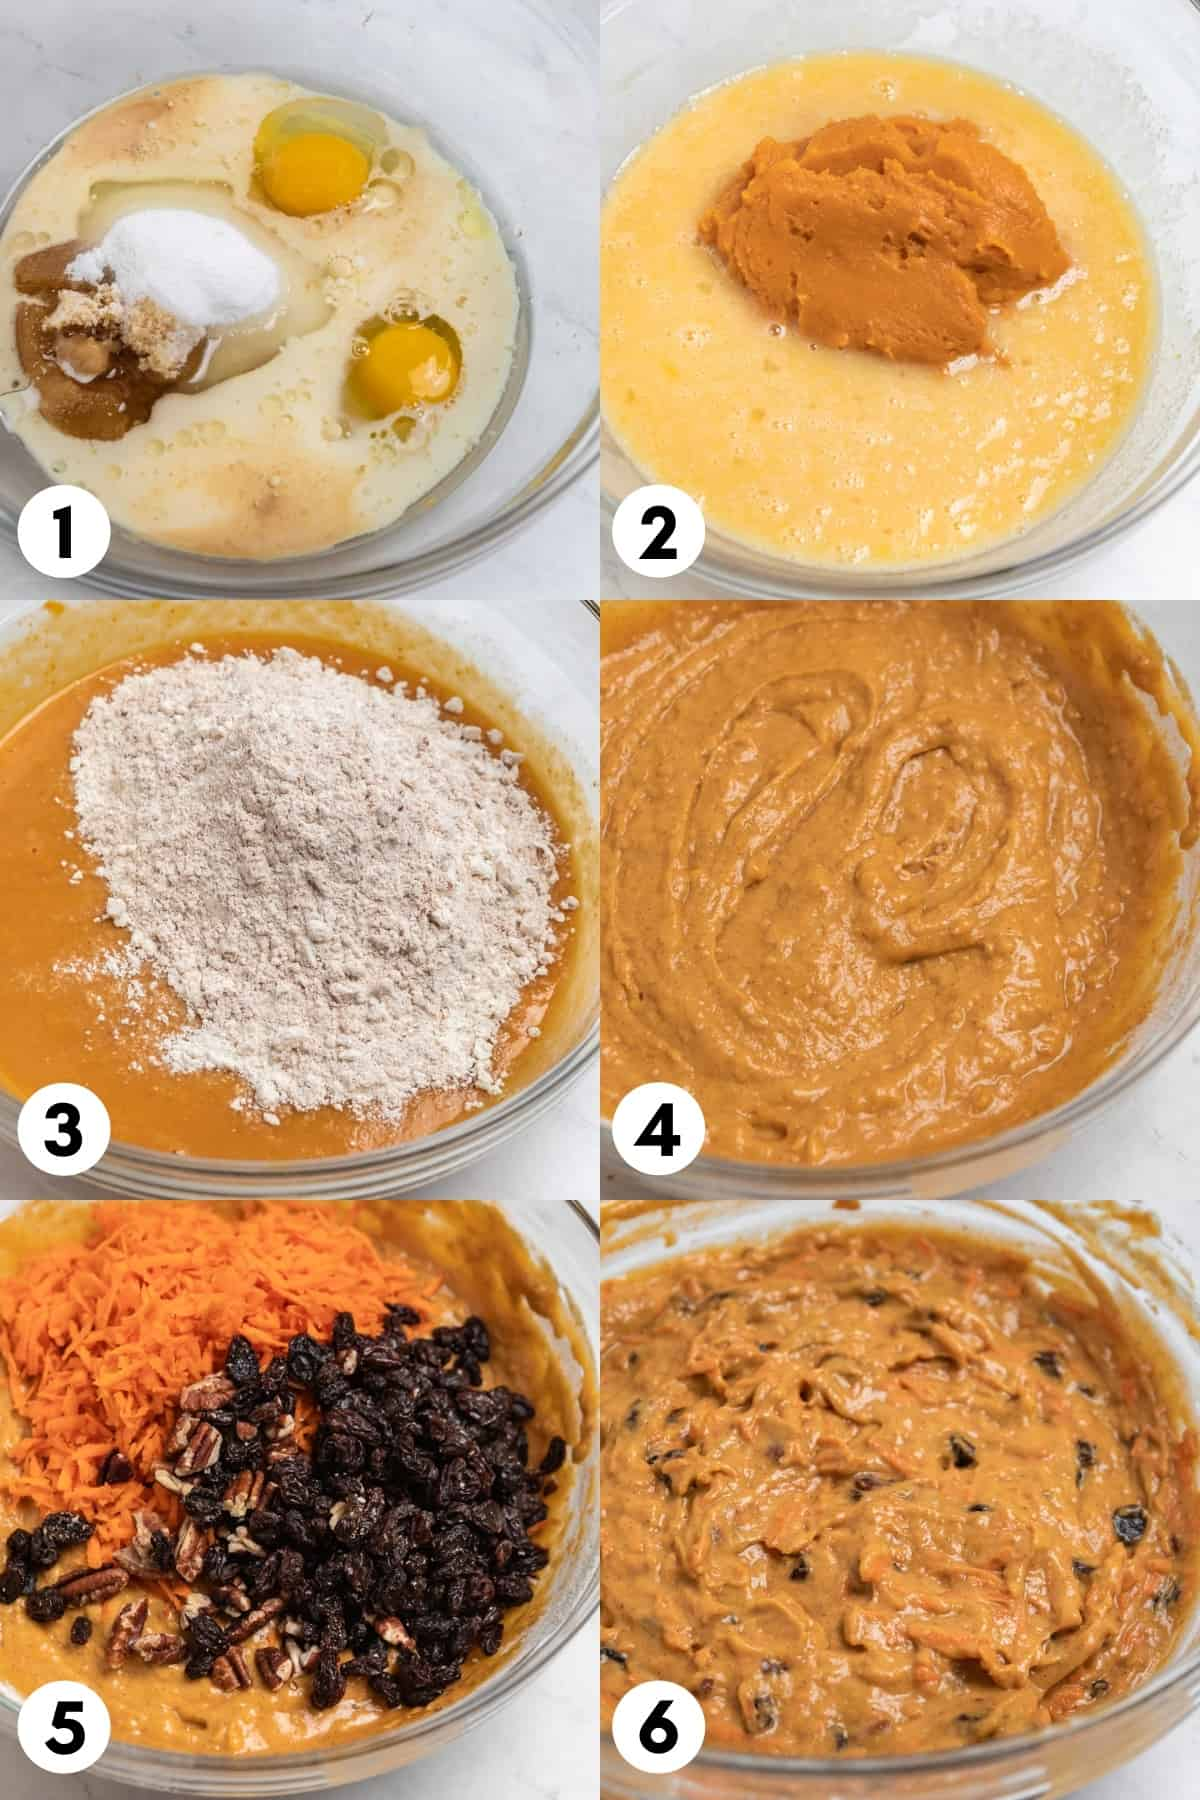 Labeled steps to make muffin recipe with mixing bowl in each image with batter steps.